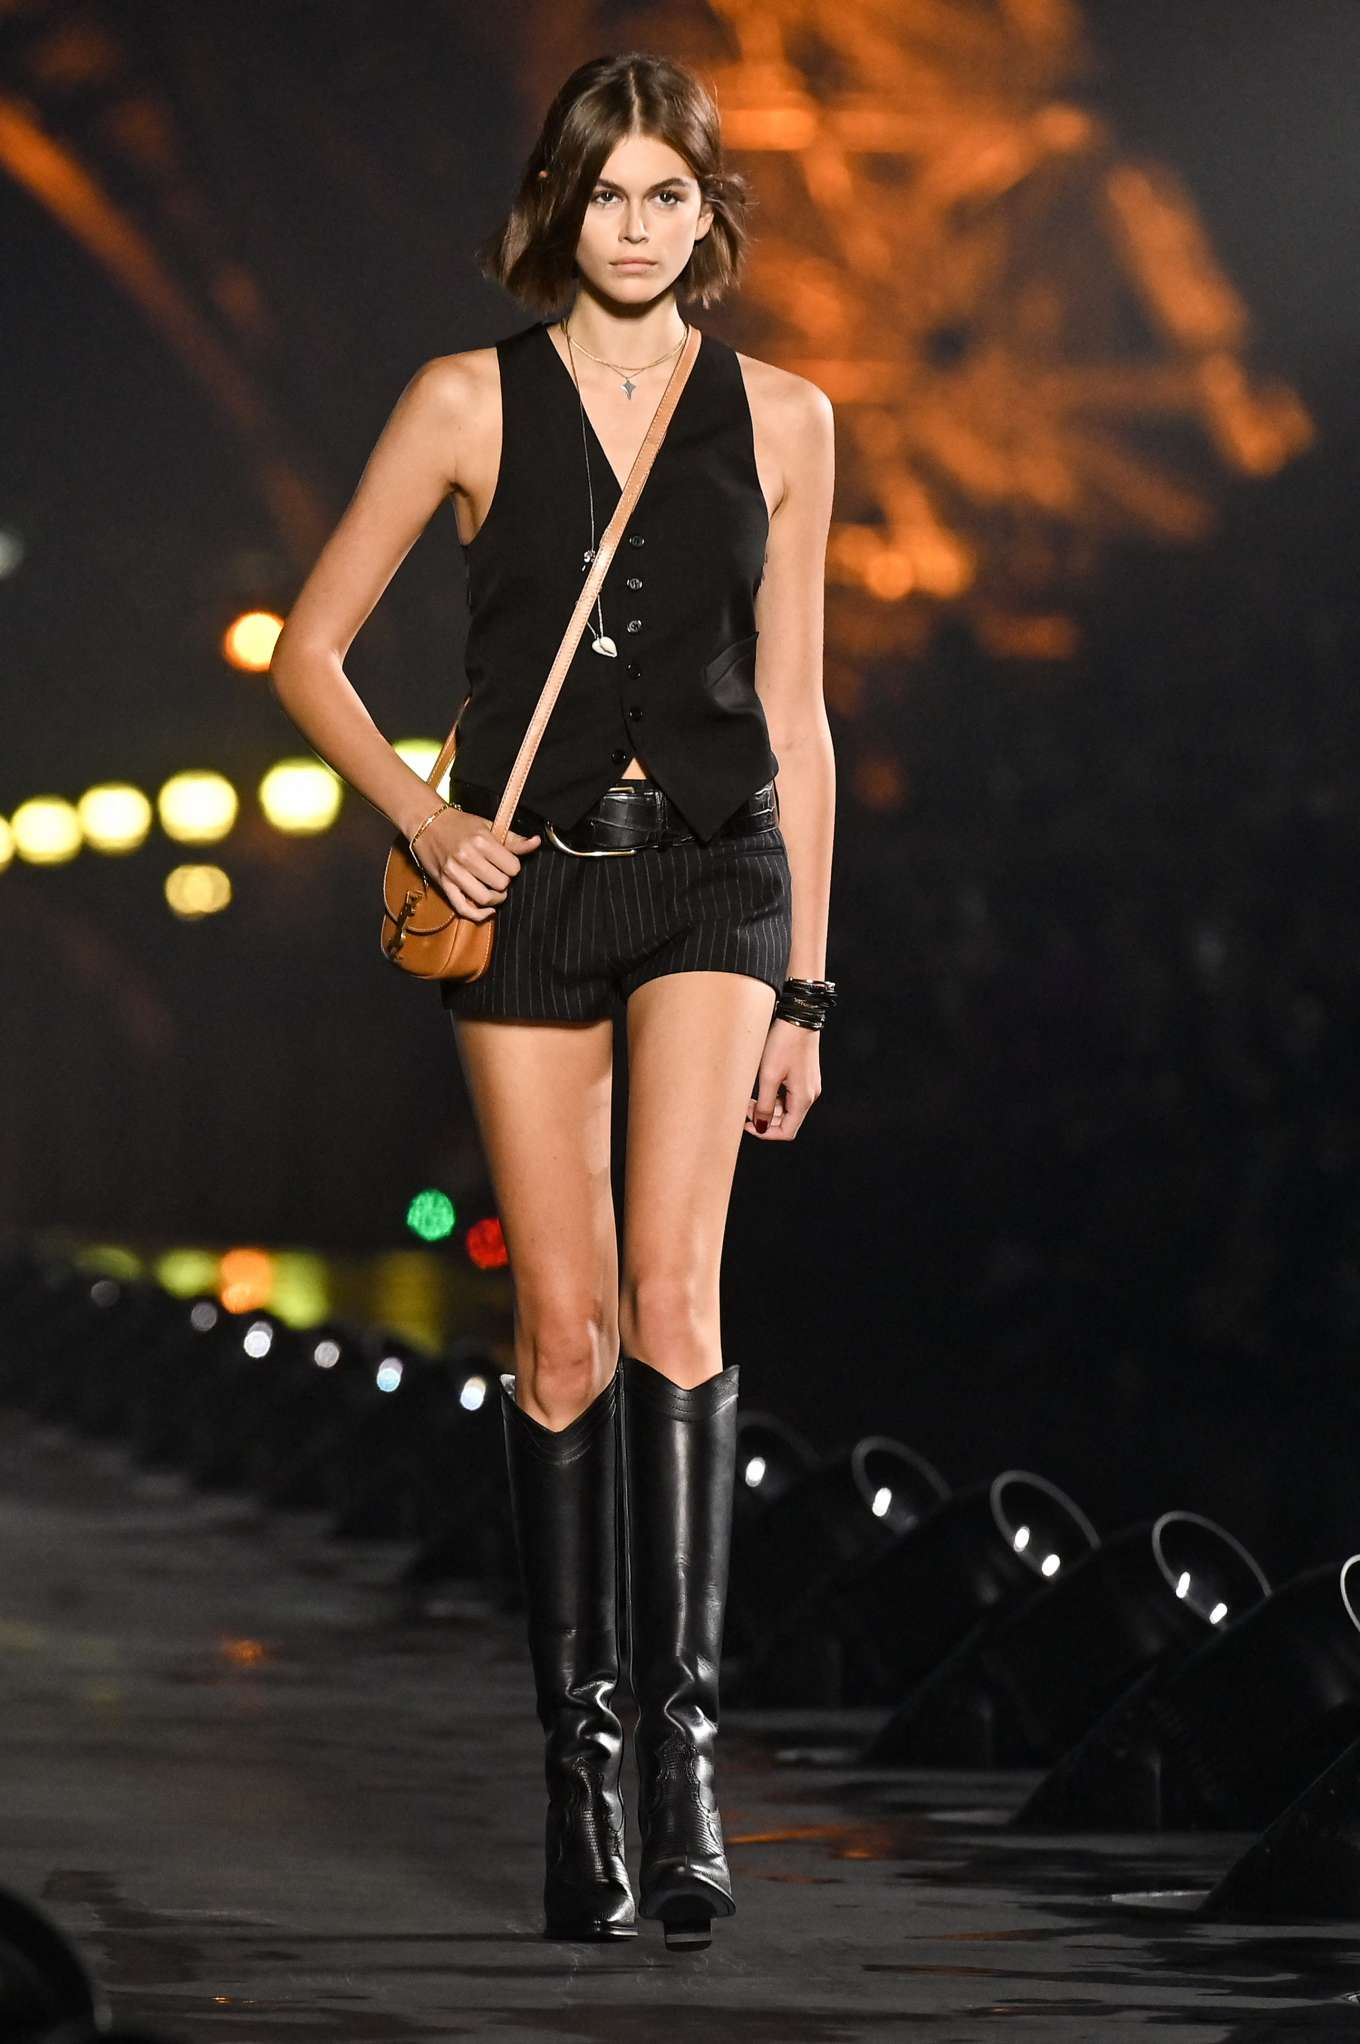 Kaia Gerber - Saint Laurent Womenswear Runway Show at Paris Fashion Week